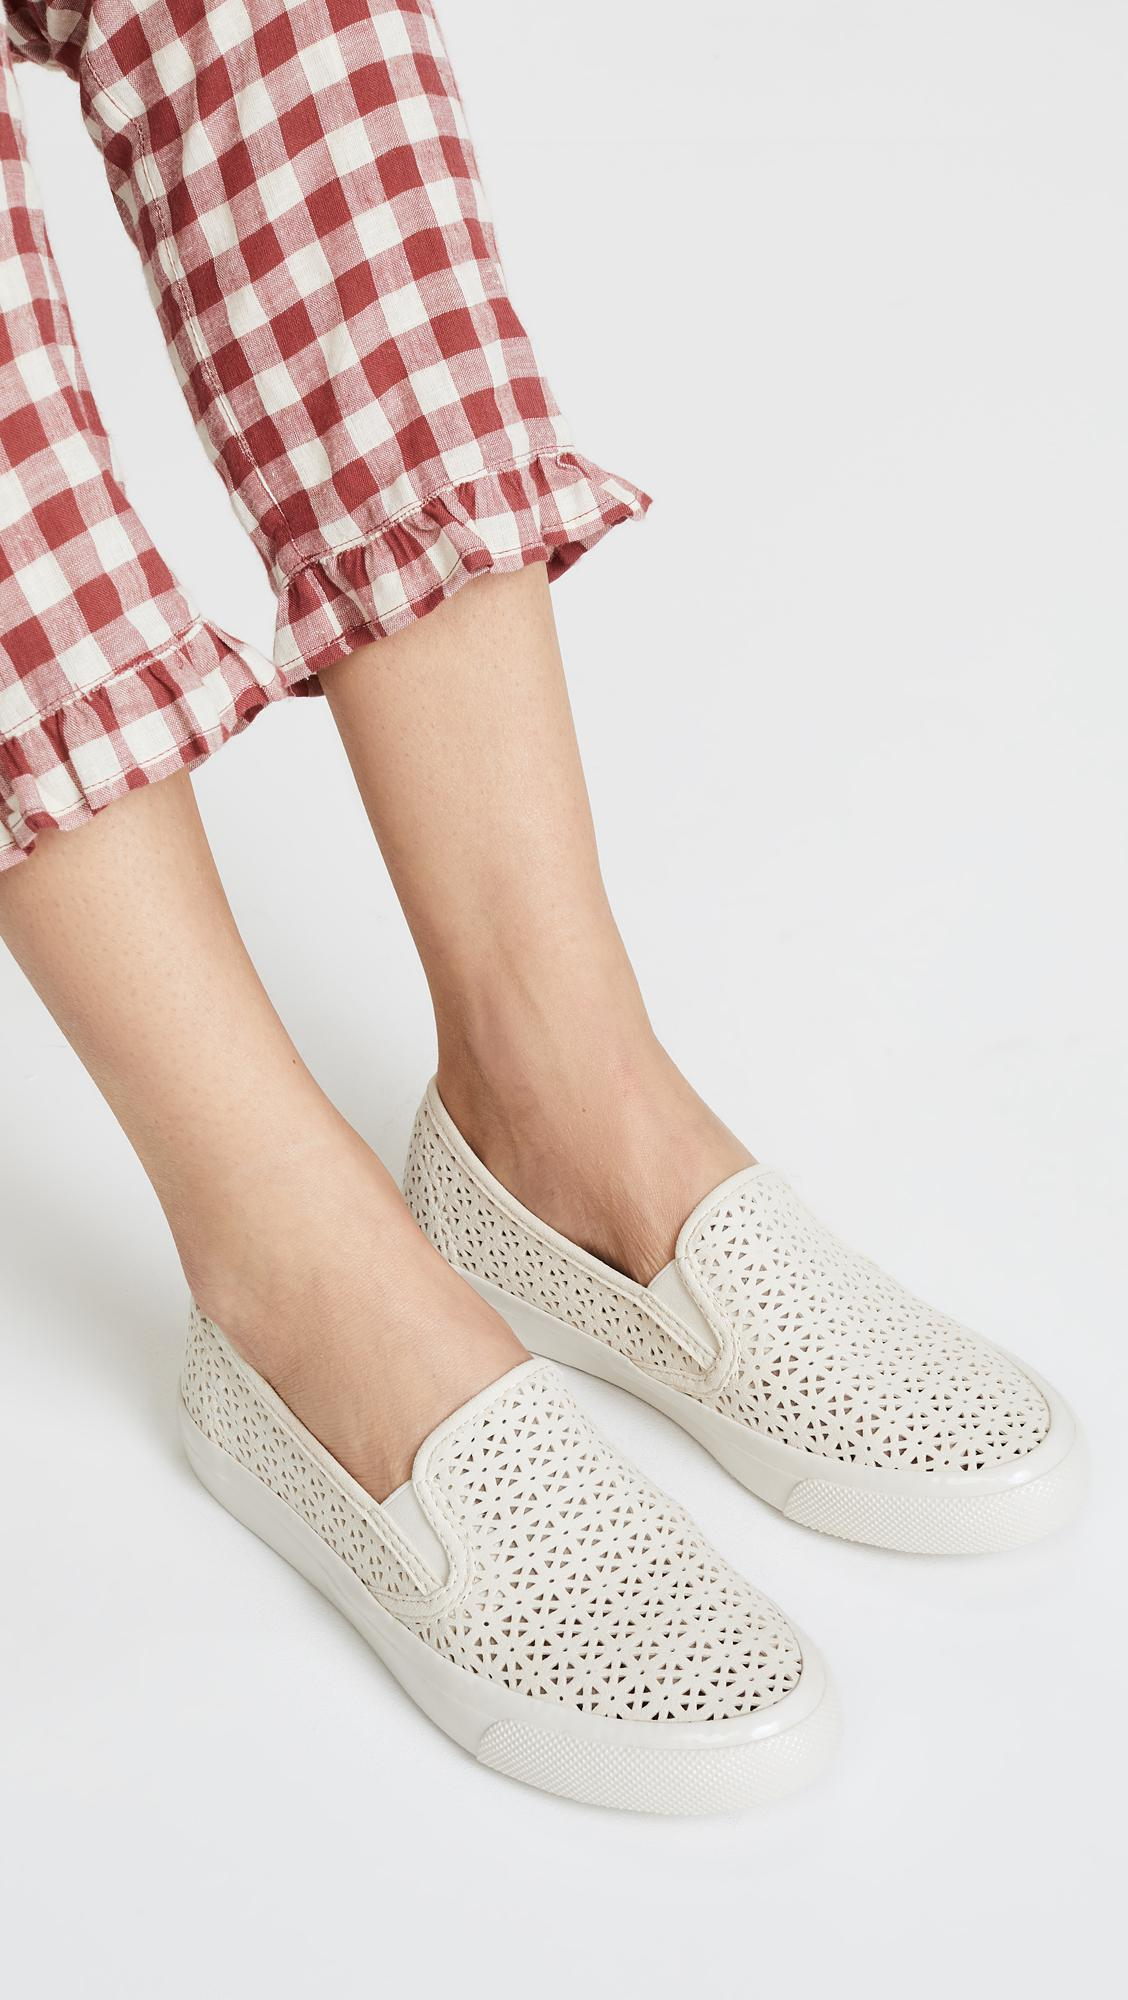 f5b0c1741a1 Sperry Top-Sider Seaside Nautical Perf Slip On Sneakers in White - Lyst